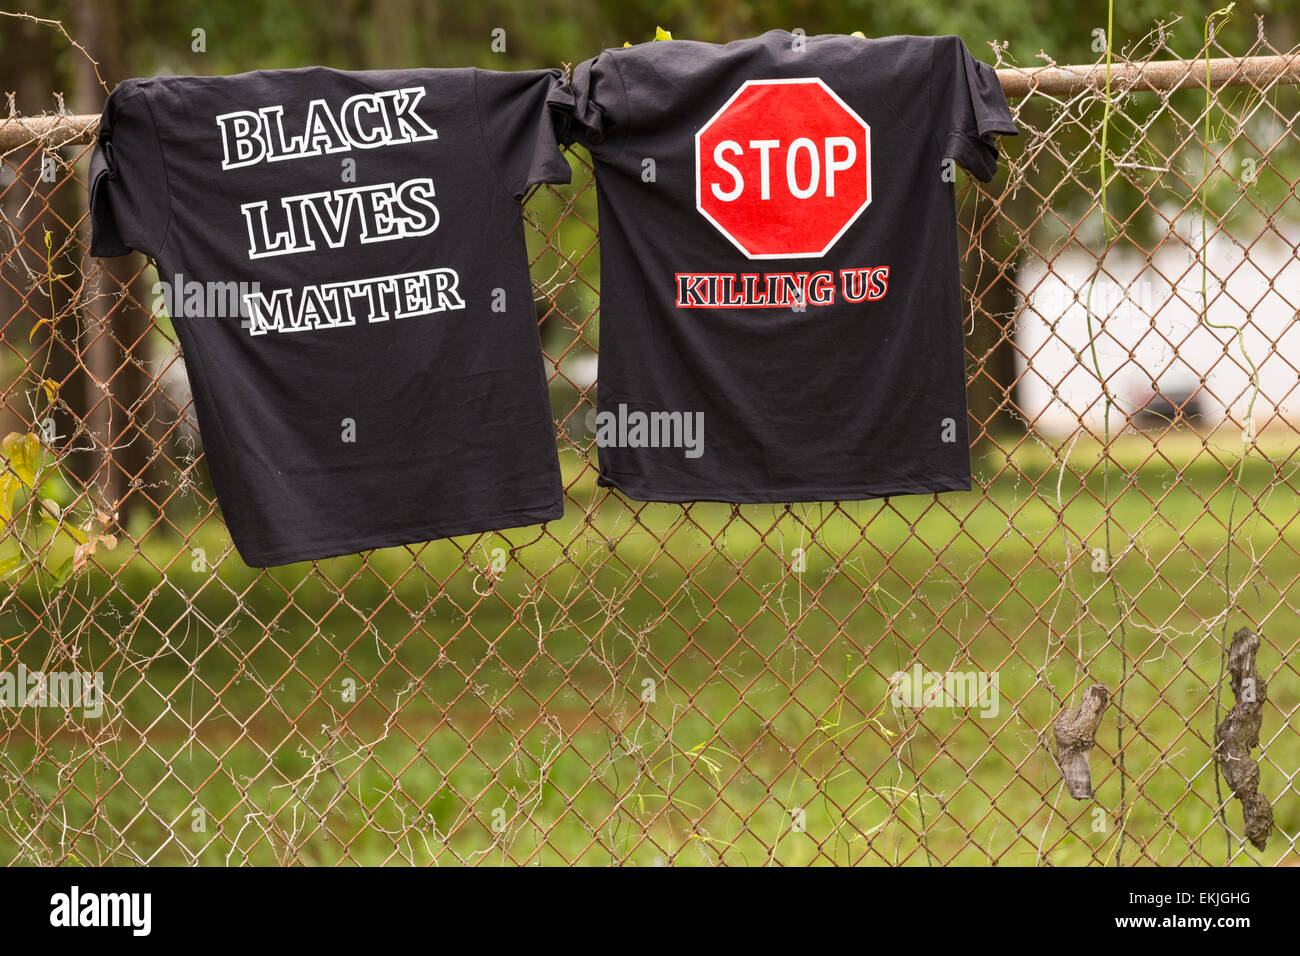 Charleston, South Carolina, USA. 10th Apr, 2015. Black Lives Matter tee-shirts hung on the fence near the spot where - Stock Image